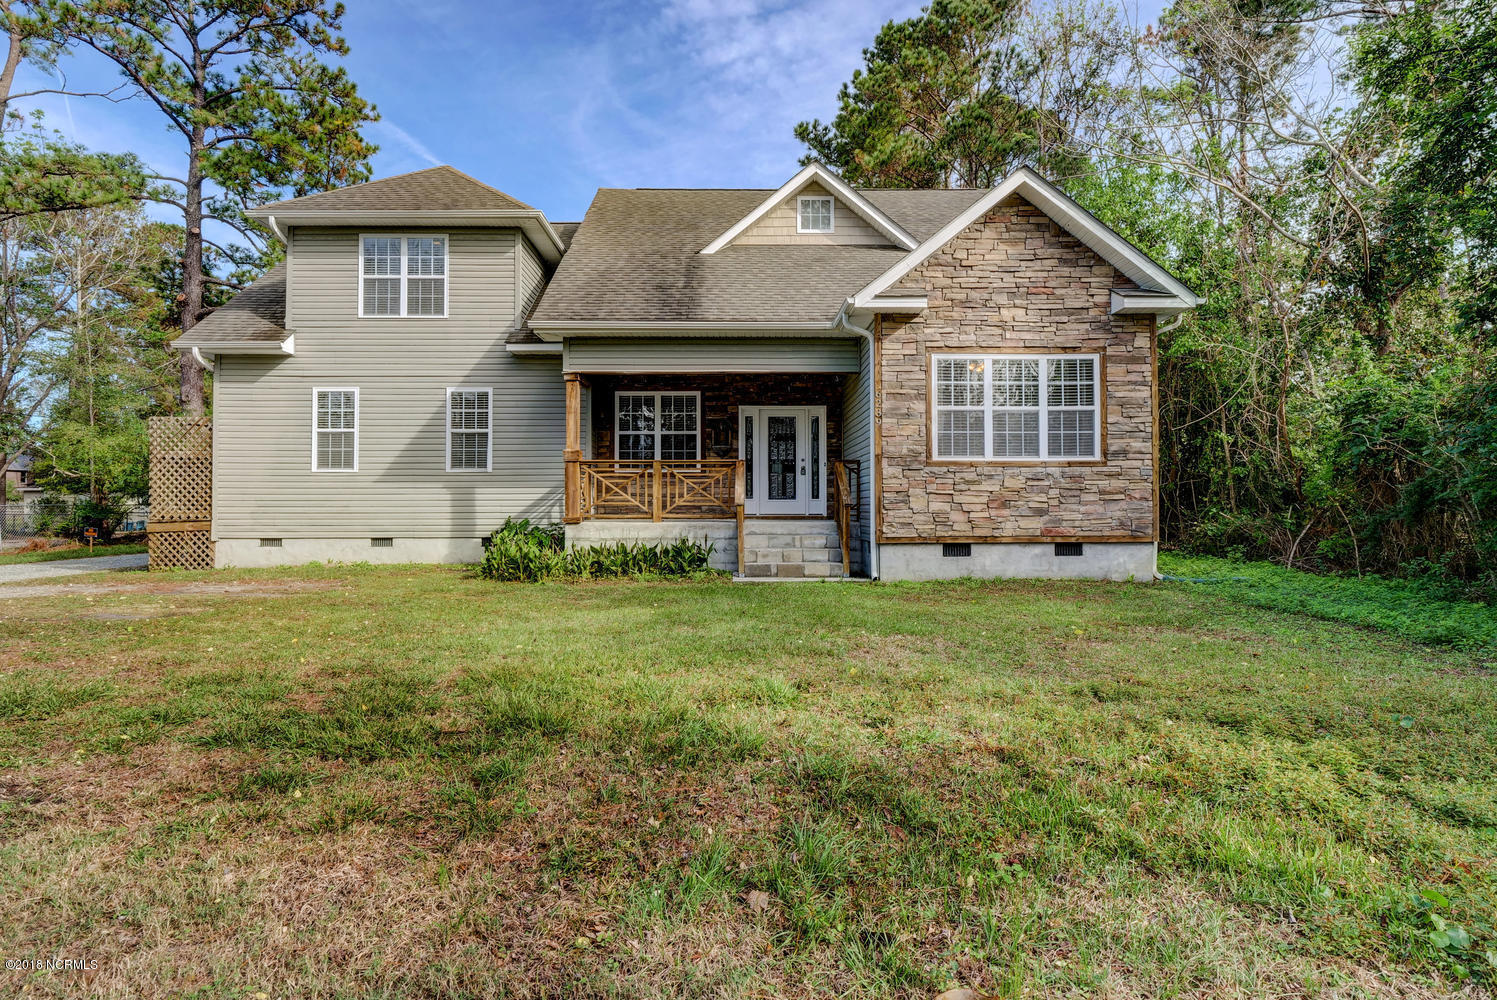 6237 Wrightsville Avenue Wilmington, NC 28403